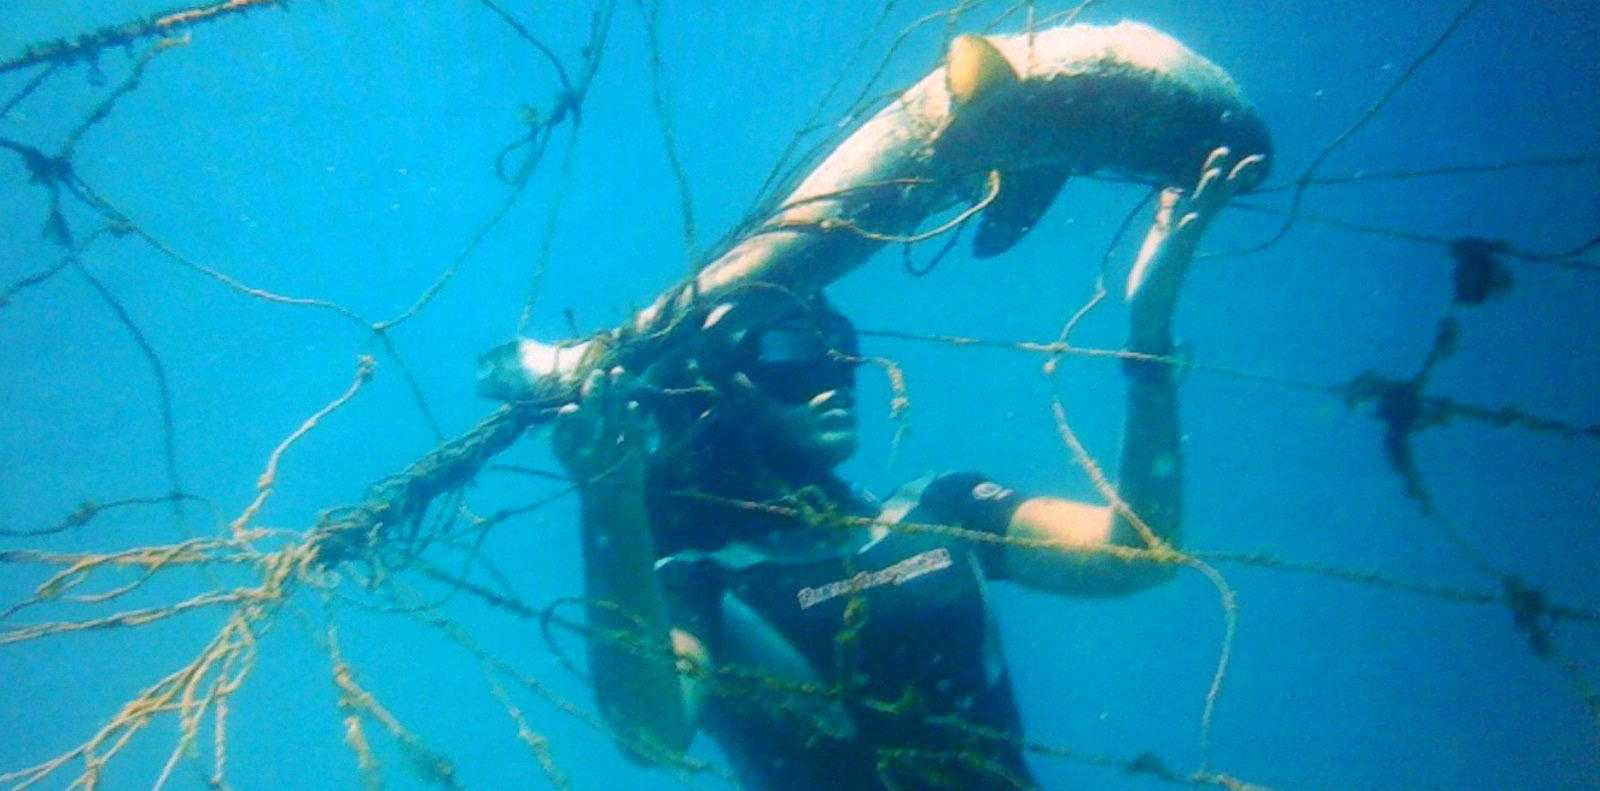 A shark trapped in fishing nets was released by Kelli Anderson, a keen environmentalist and diver. Photo EcoDivers